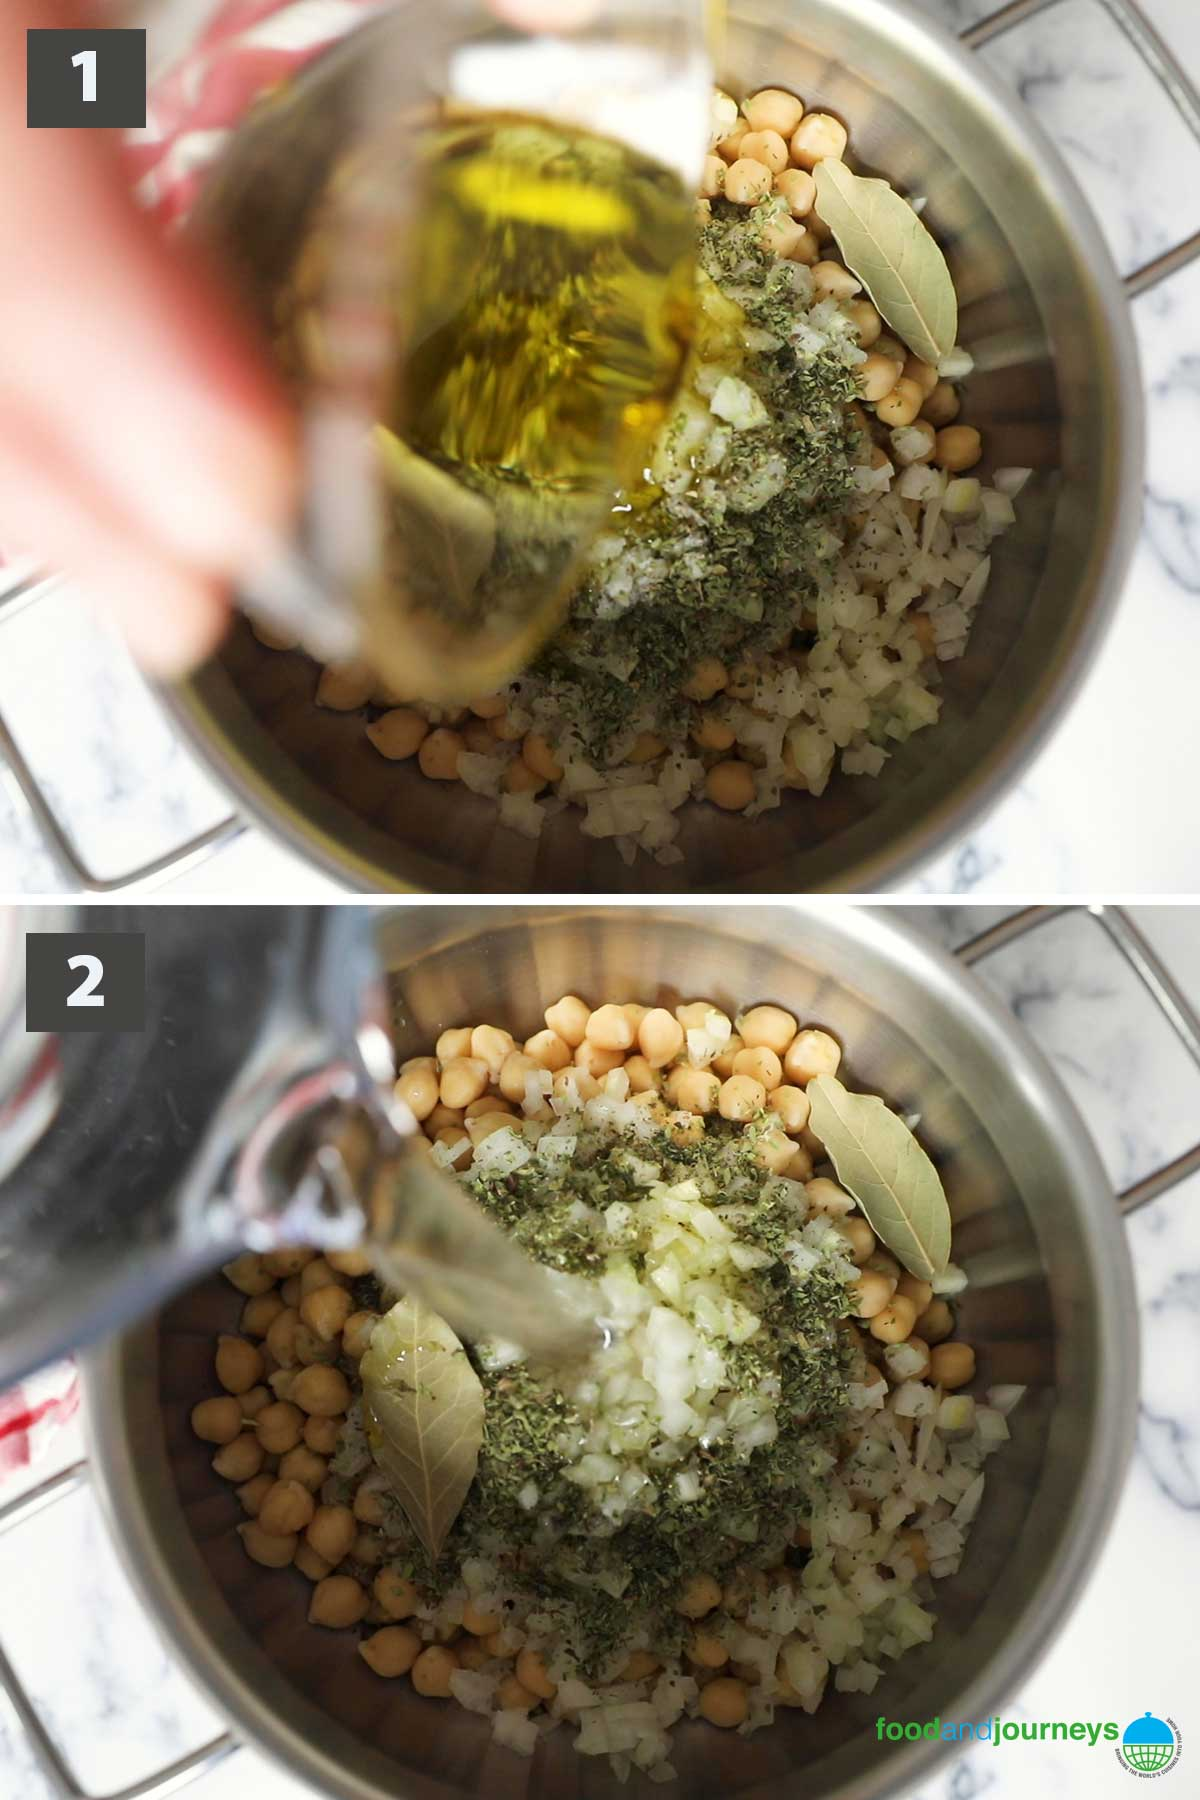 First part of a collage of images showing the step by step process on how to prepare chickpea soup.